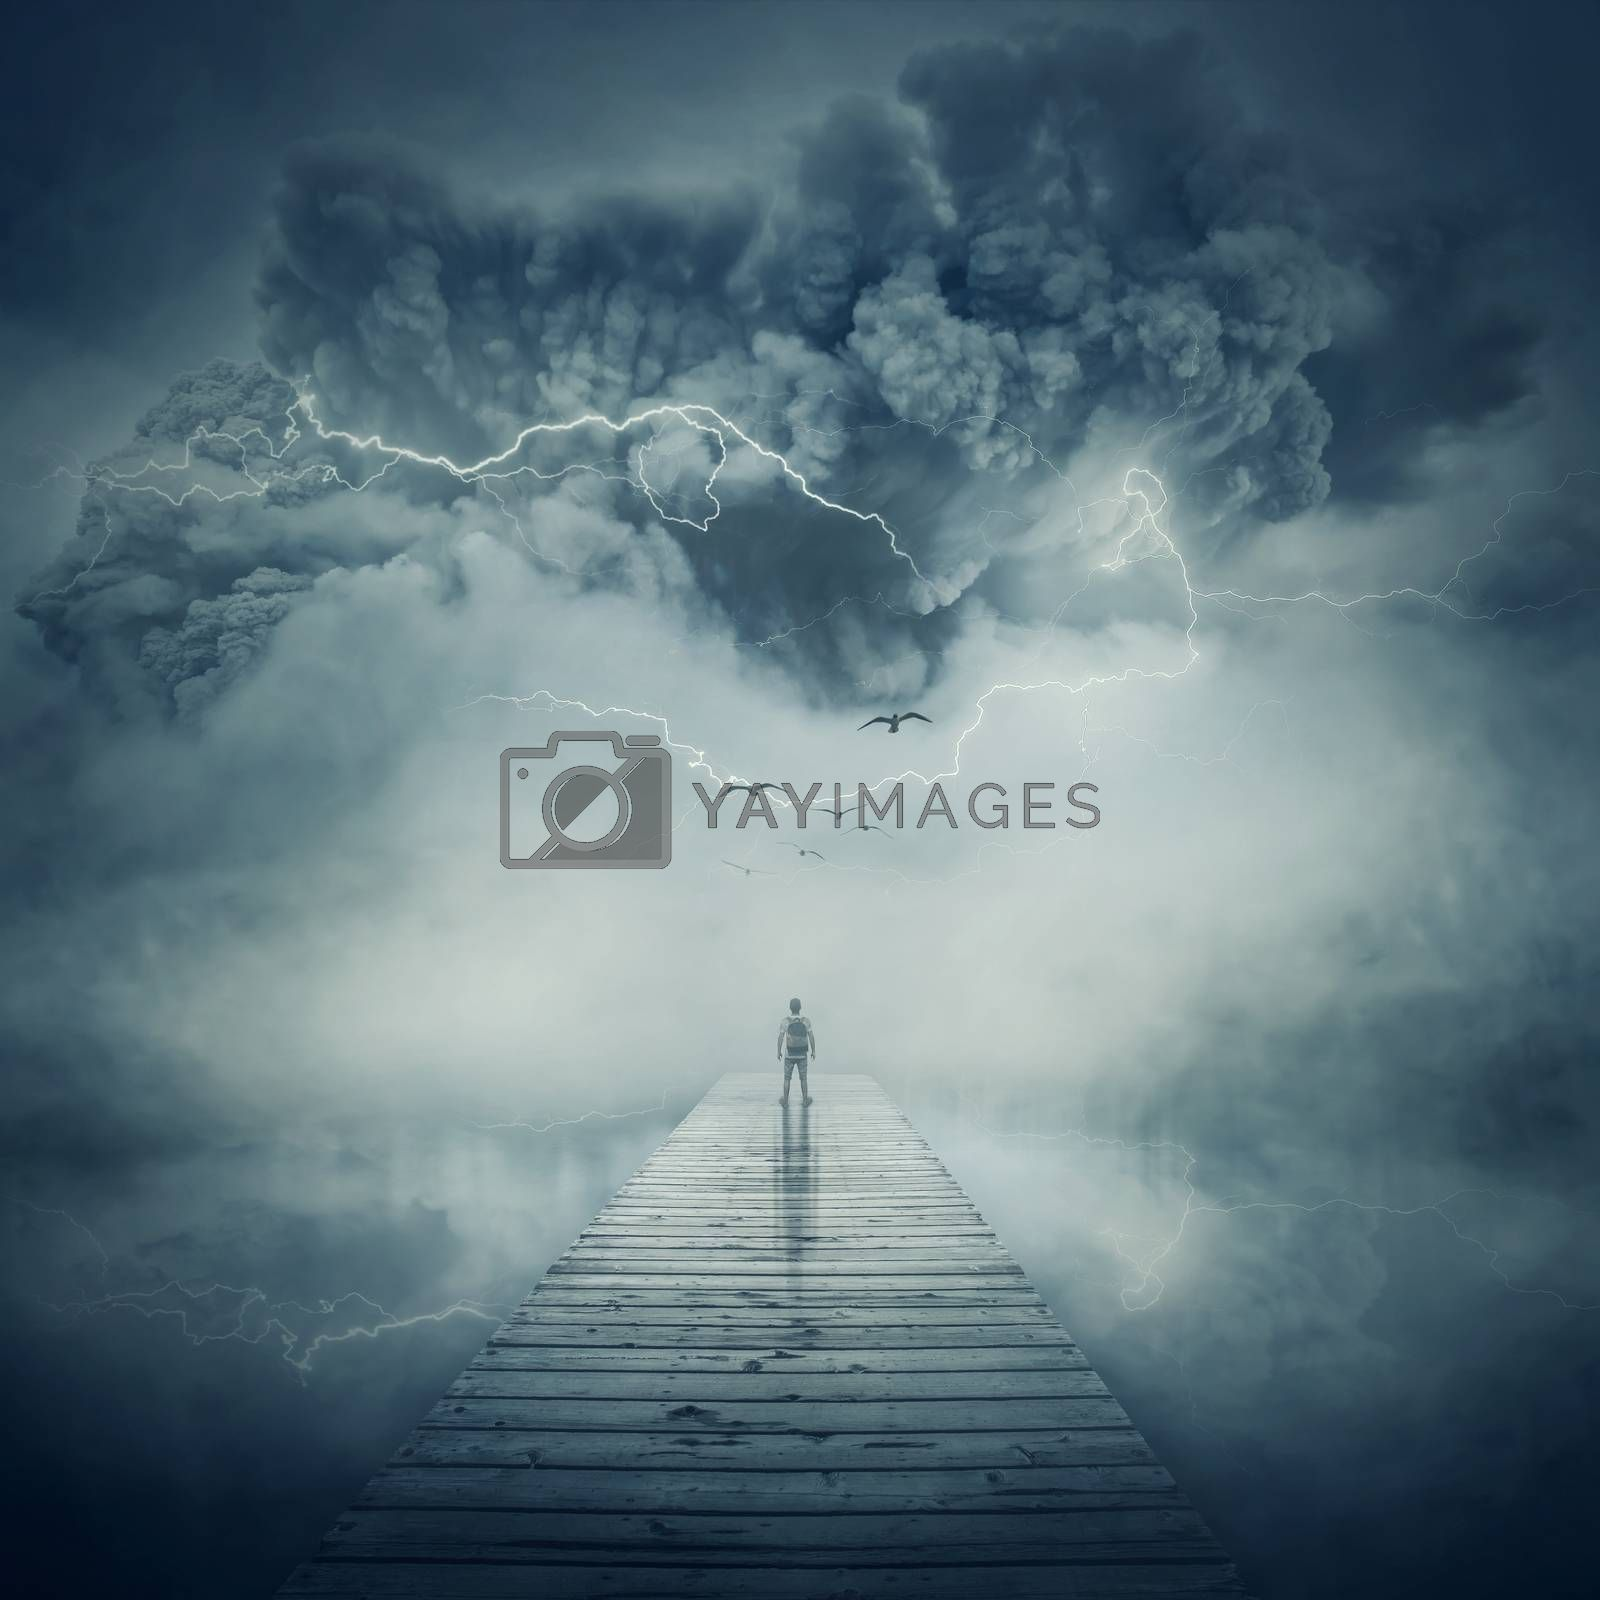 Fantastic view as a man, stand on the wooden pier at the middle of the lake in a foggy and stormy day watching a hurricane coming. Facing the life pressure and stress concept.